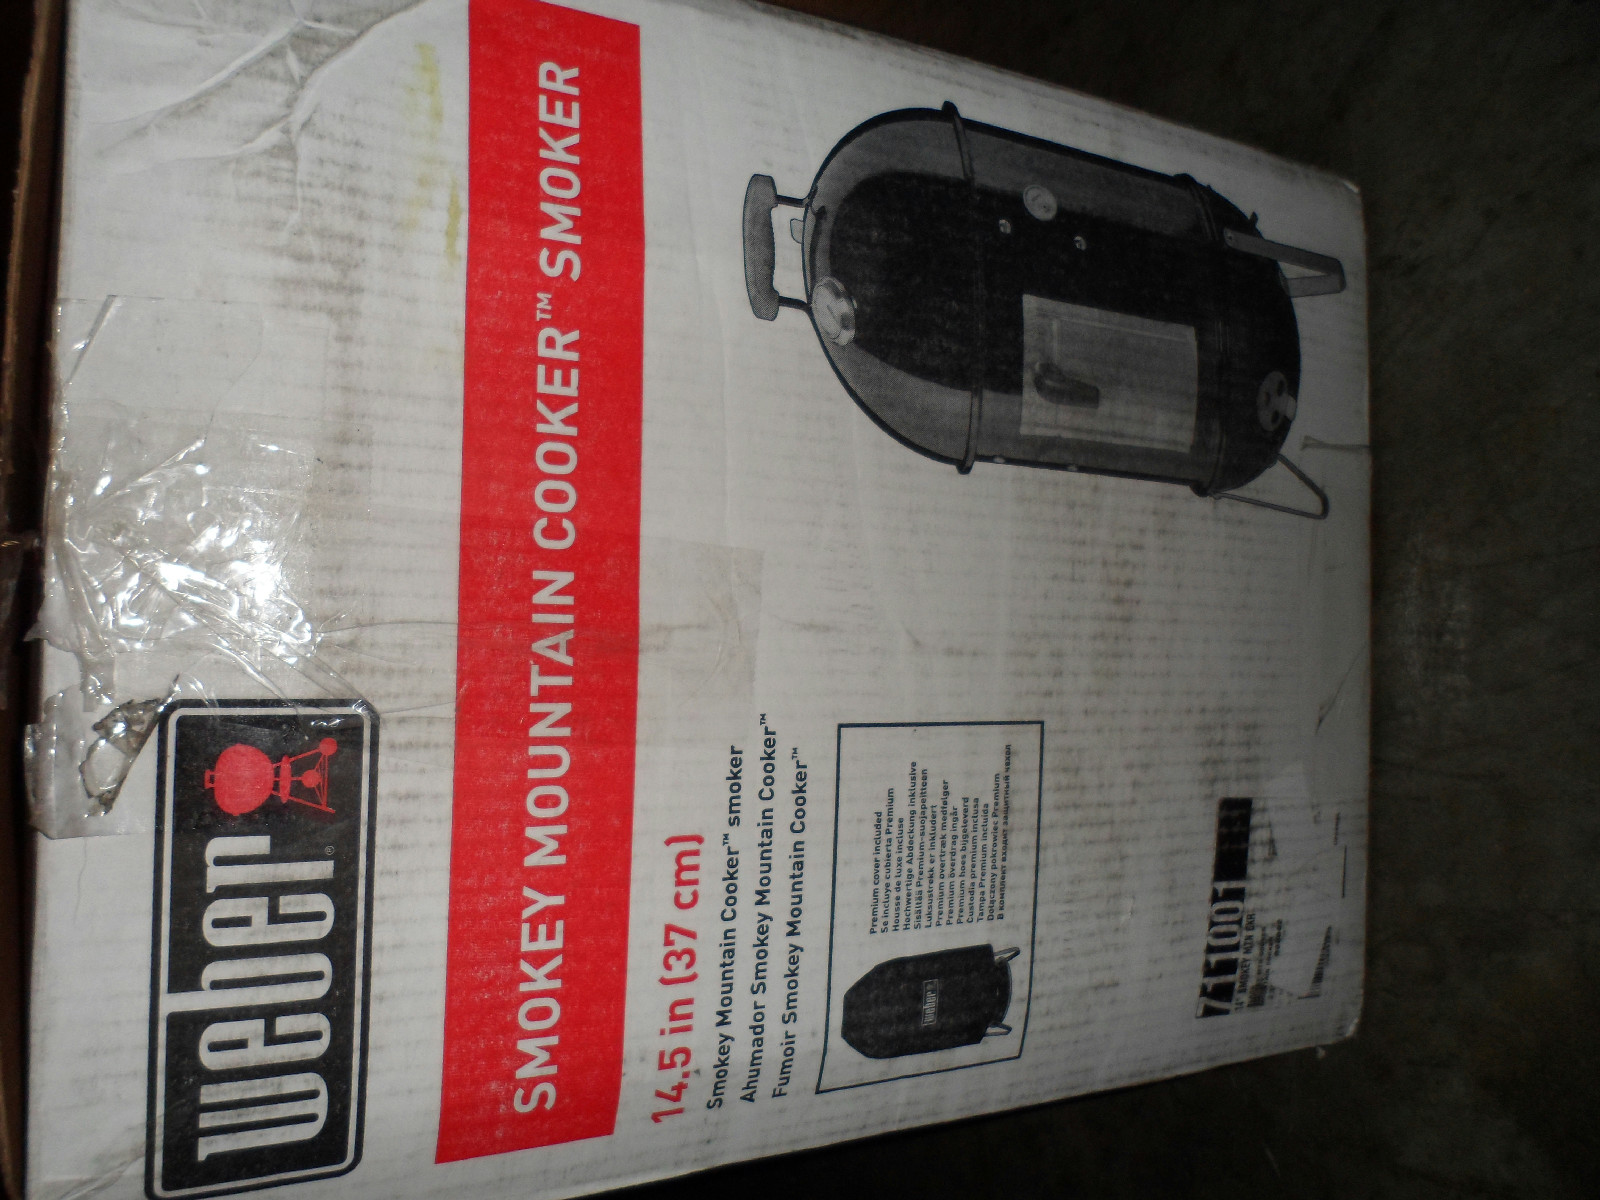 Details about Weber 711001 Smokey Mountain Cooker Smoker 14.5 Inch #AB2025